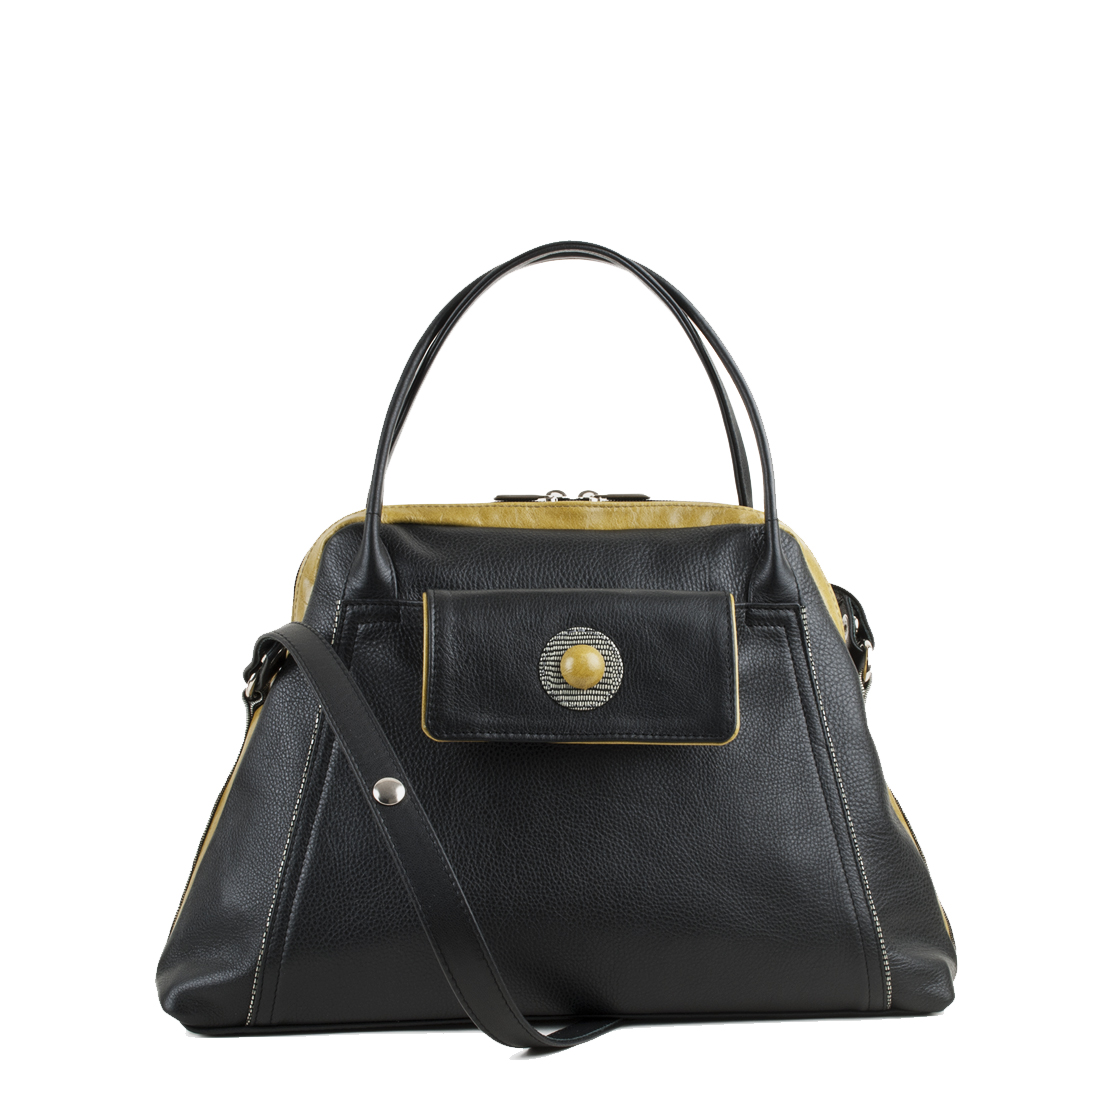 Lottie Black Leather Shoulder Bag